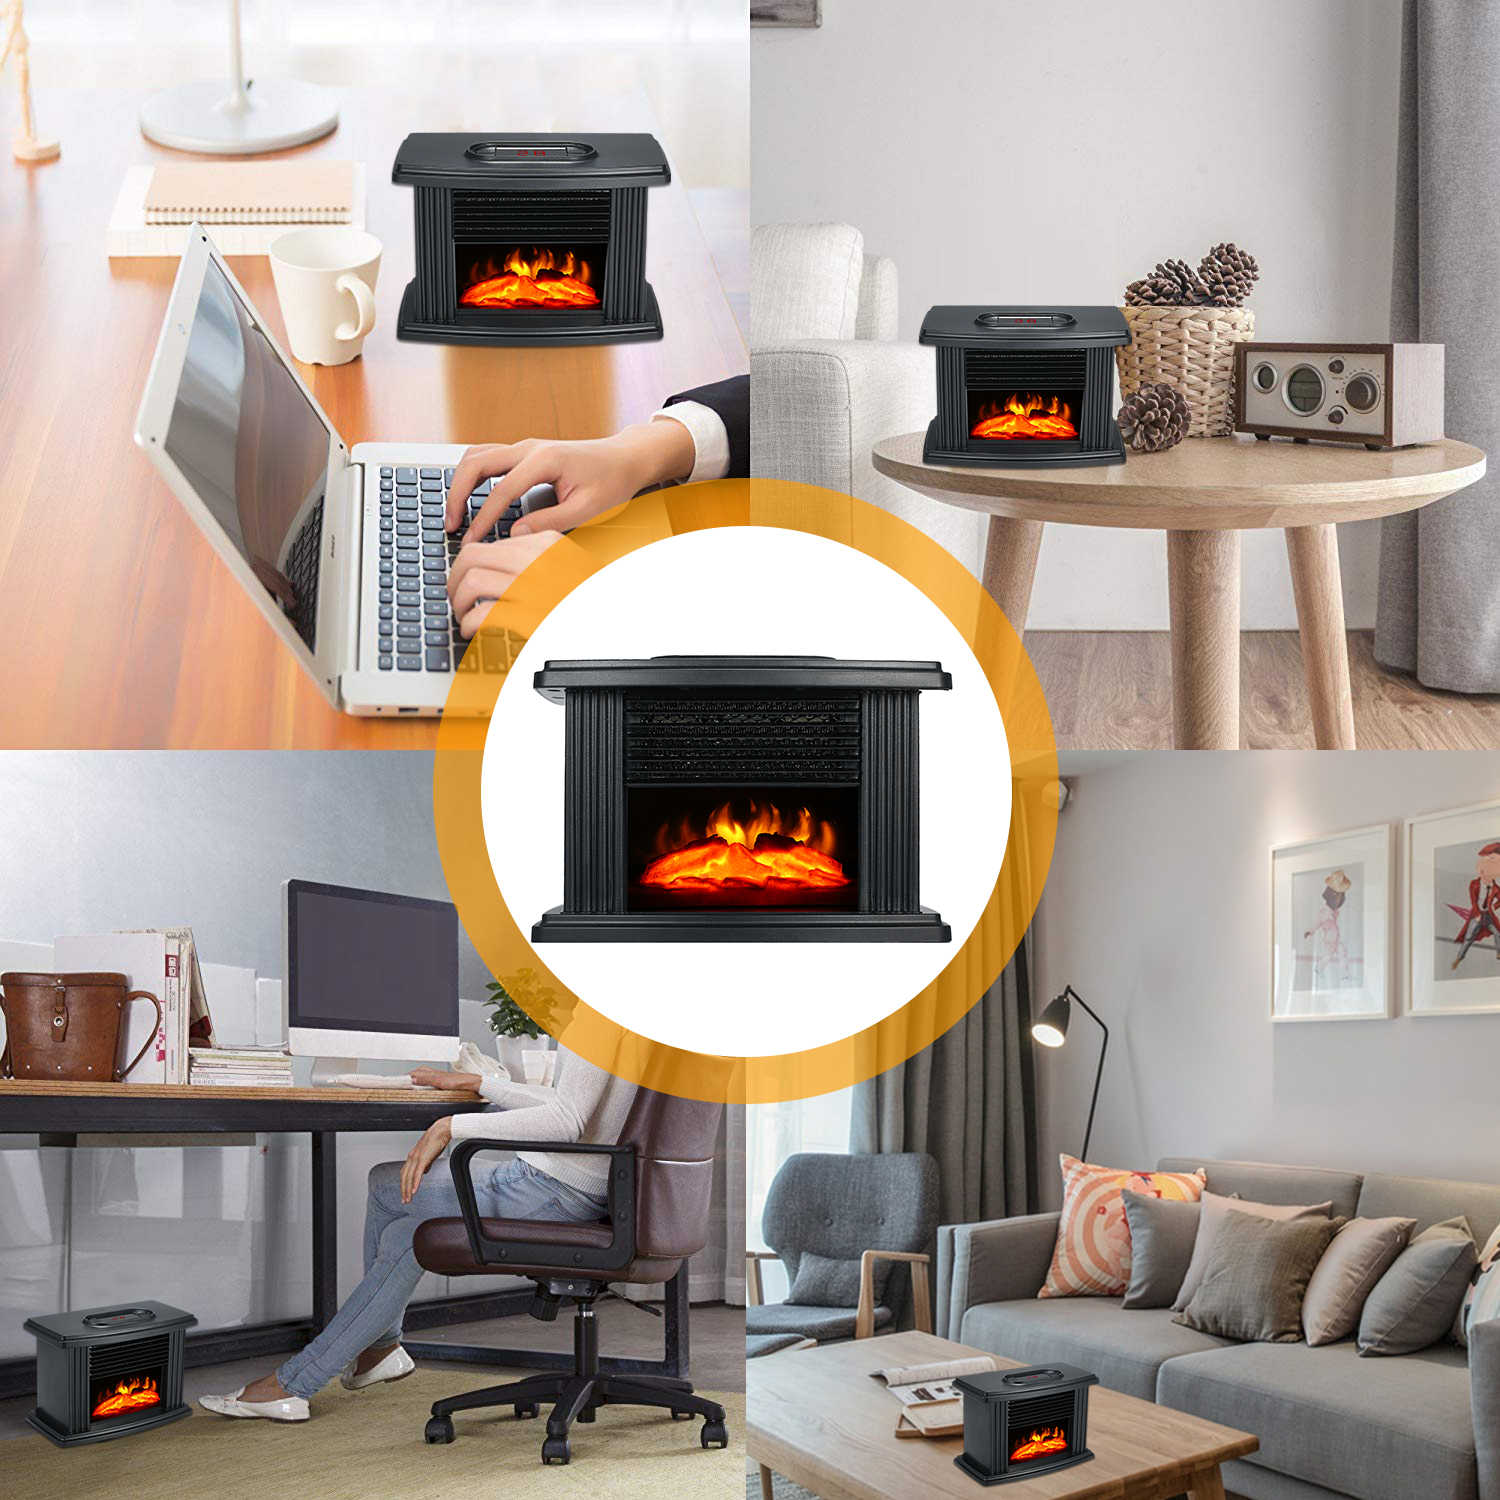 New 1000W Mini Electric Fireplace Warm Air Heater with Flame Effect for Winter Cold Weather 220V 50Hz Desktop Air Blower Fan